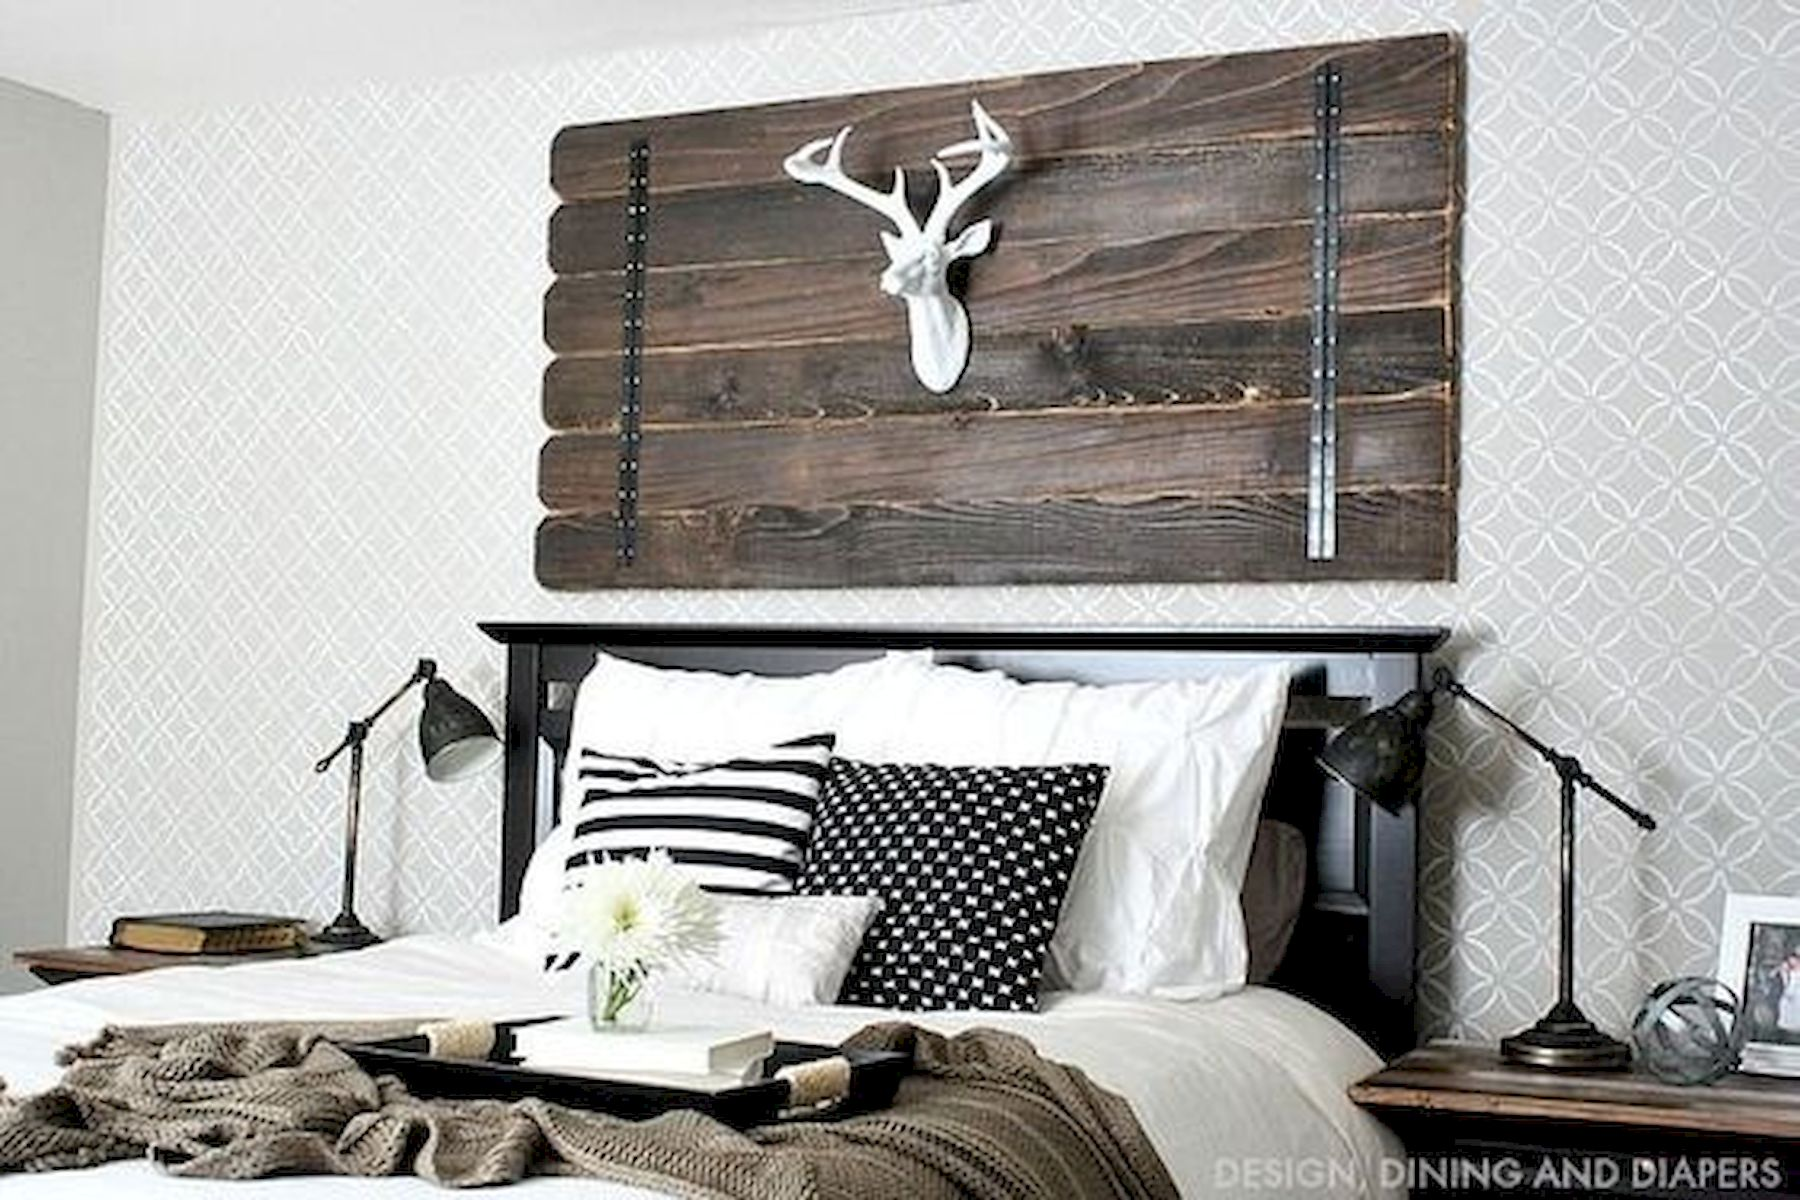 40 Classic Farmhouse Bedroom Design and Decor Ideas That Make Your Home Feel Great (1)